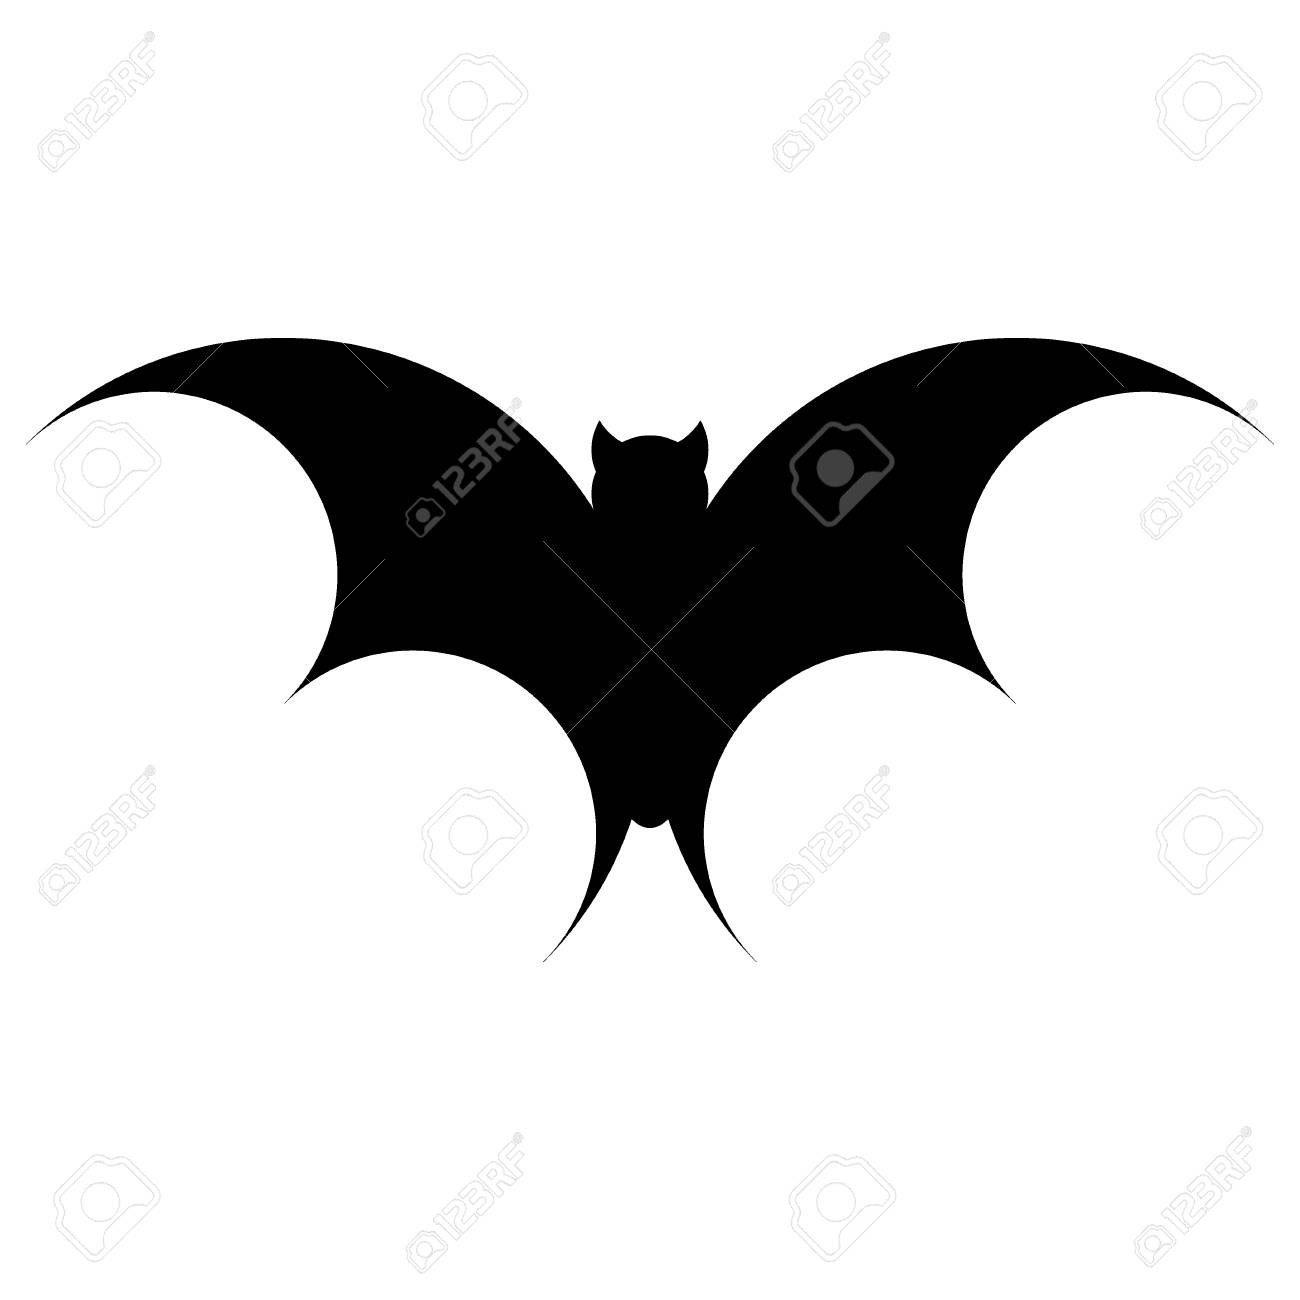 bat for the night halloween. vector silhouette. vector illustration